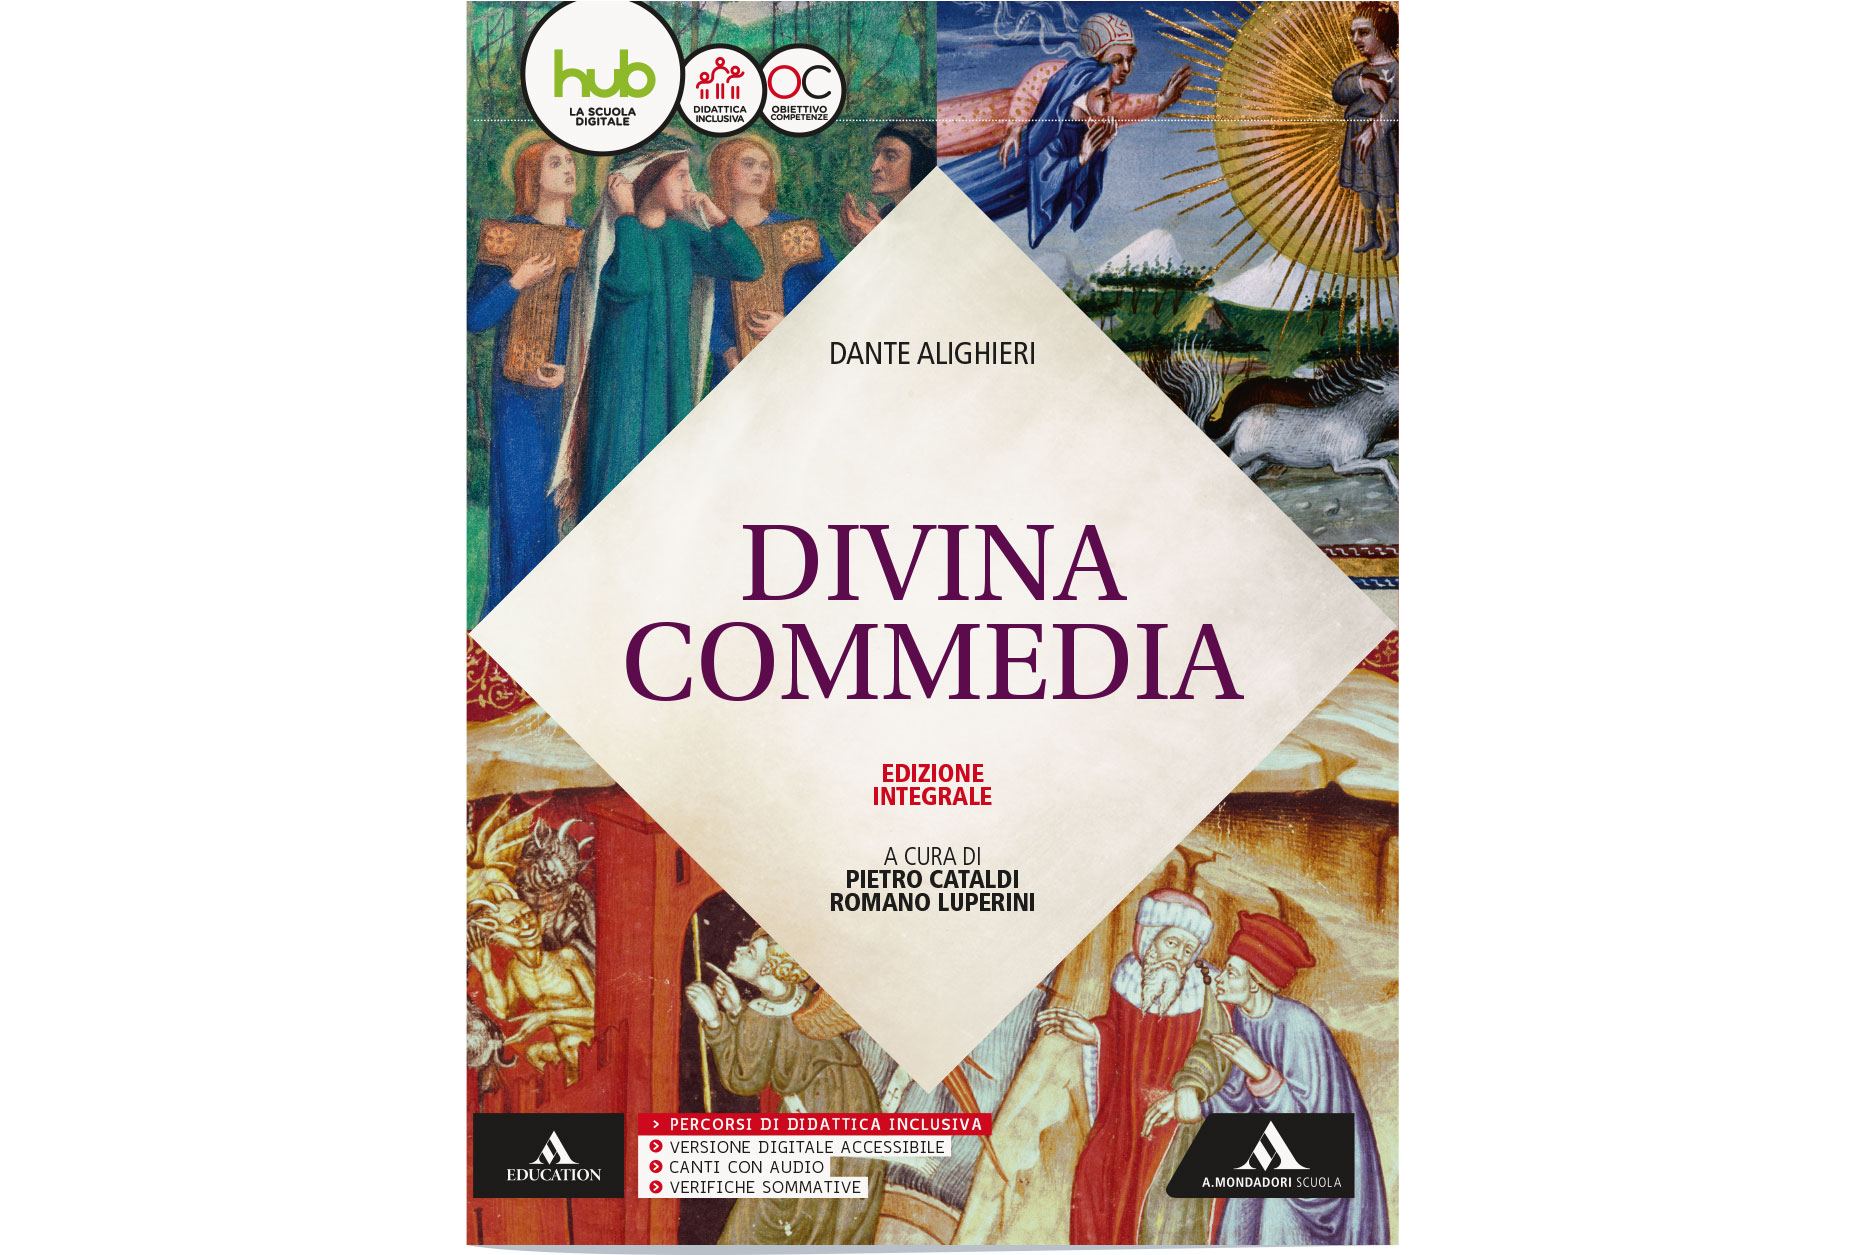 00001-Plum-Divina-Commedia-Mondadori-Education